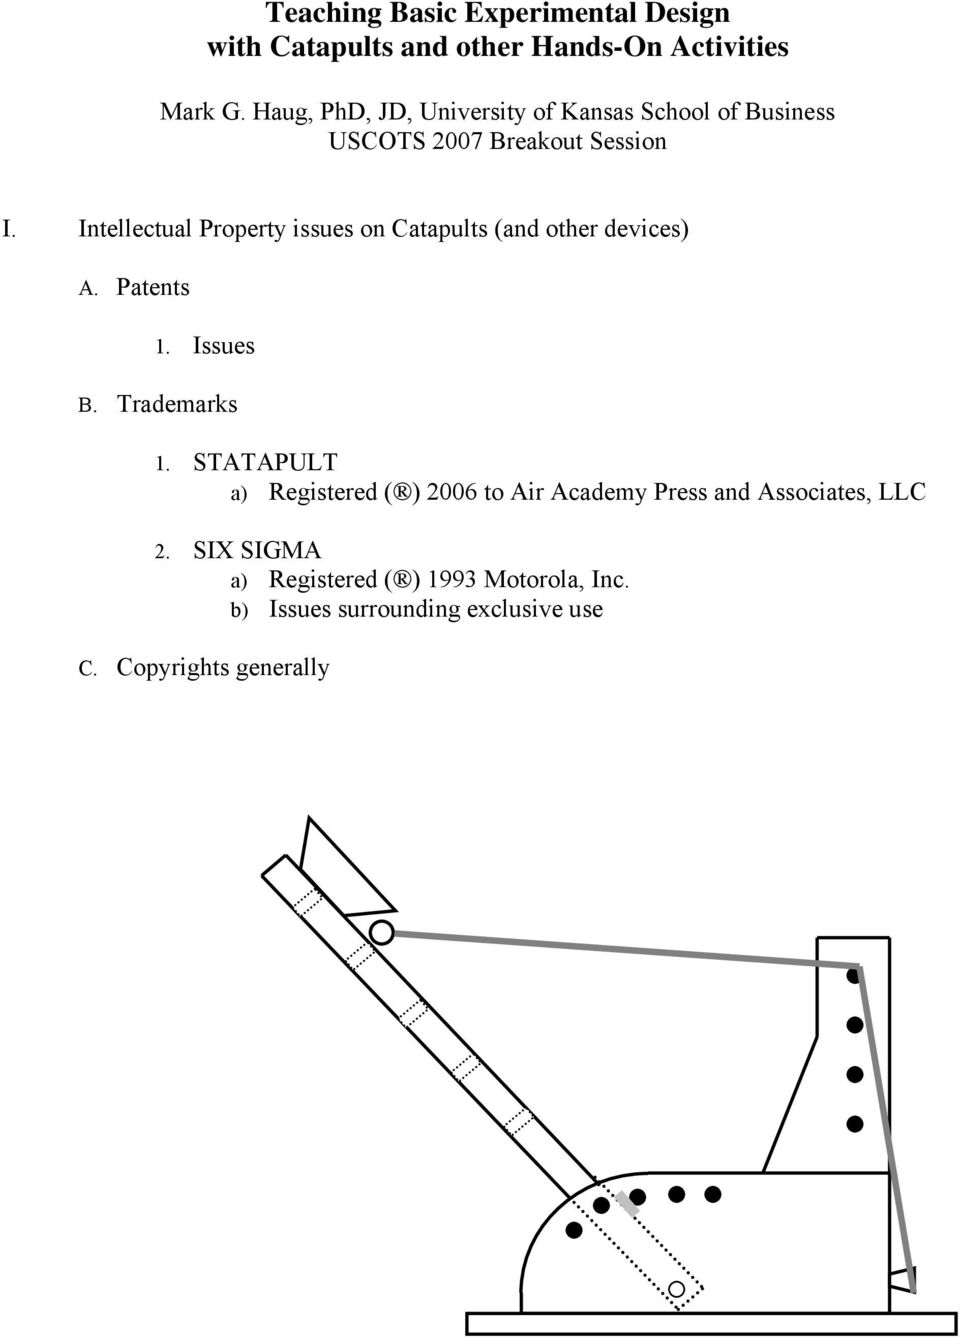 Teaching Basic Experimental Design With Catapults And Other Hands On Catapult Diagram Intellectual Property Issues Devices A Patents 1